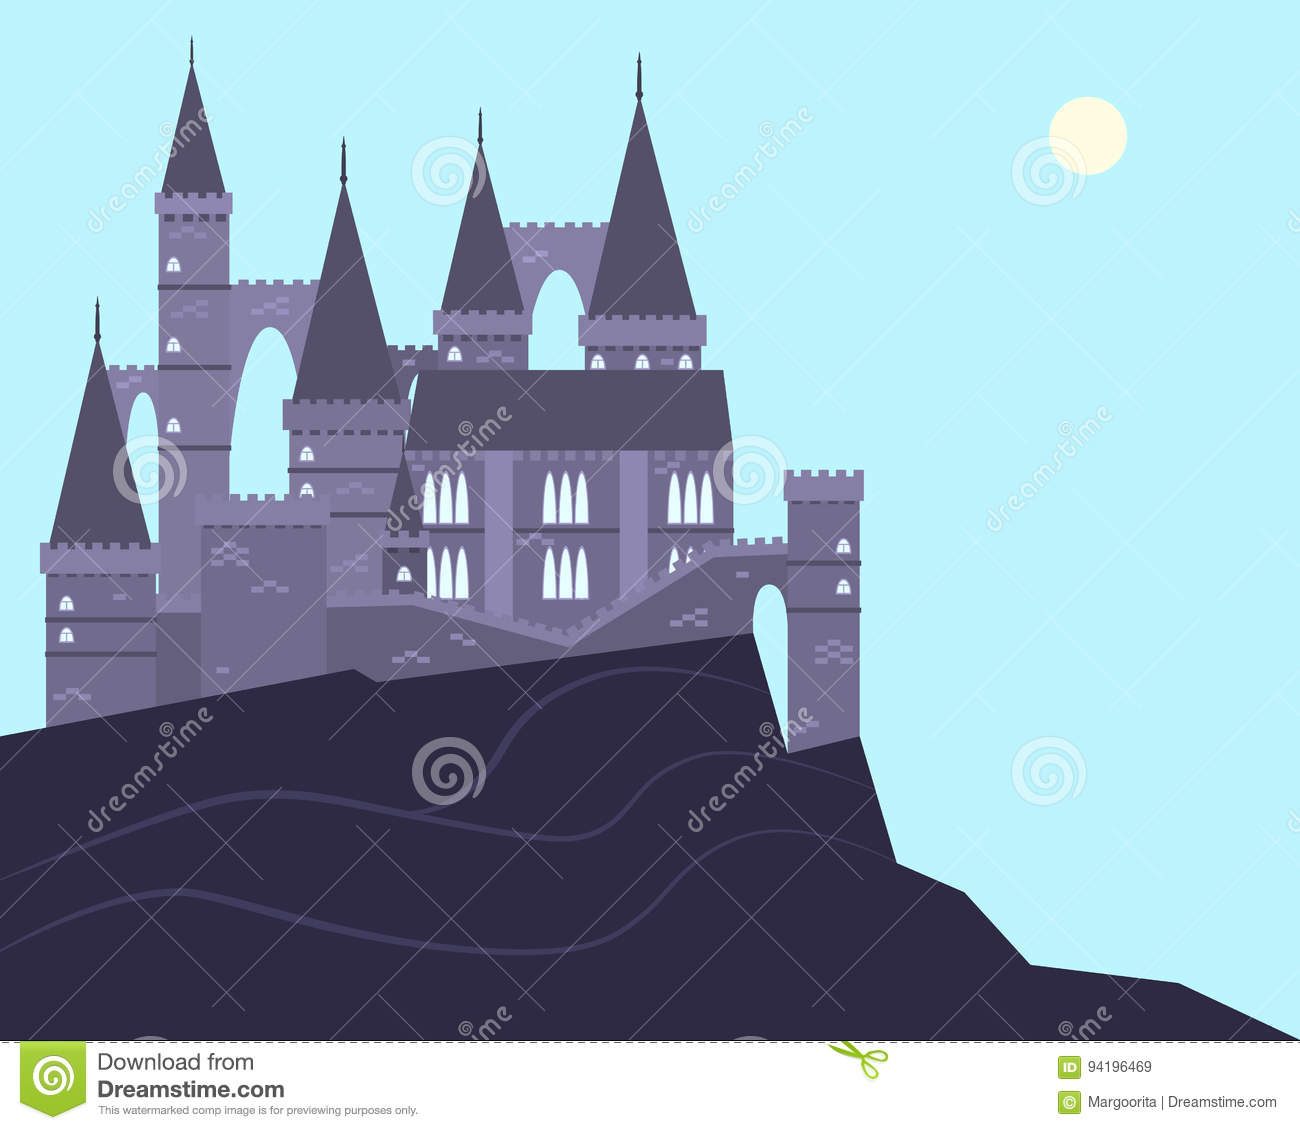 Town Landscape Vector Illustration: Old Castle On The Mountain Stock Vector. Illustration Of